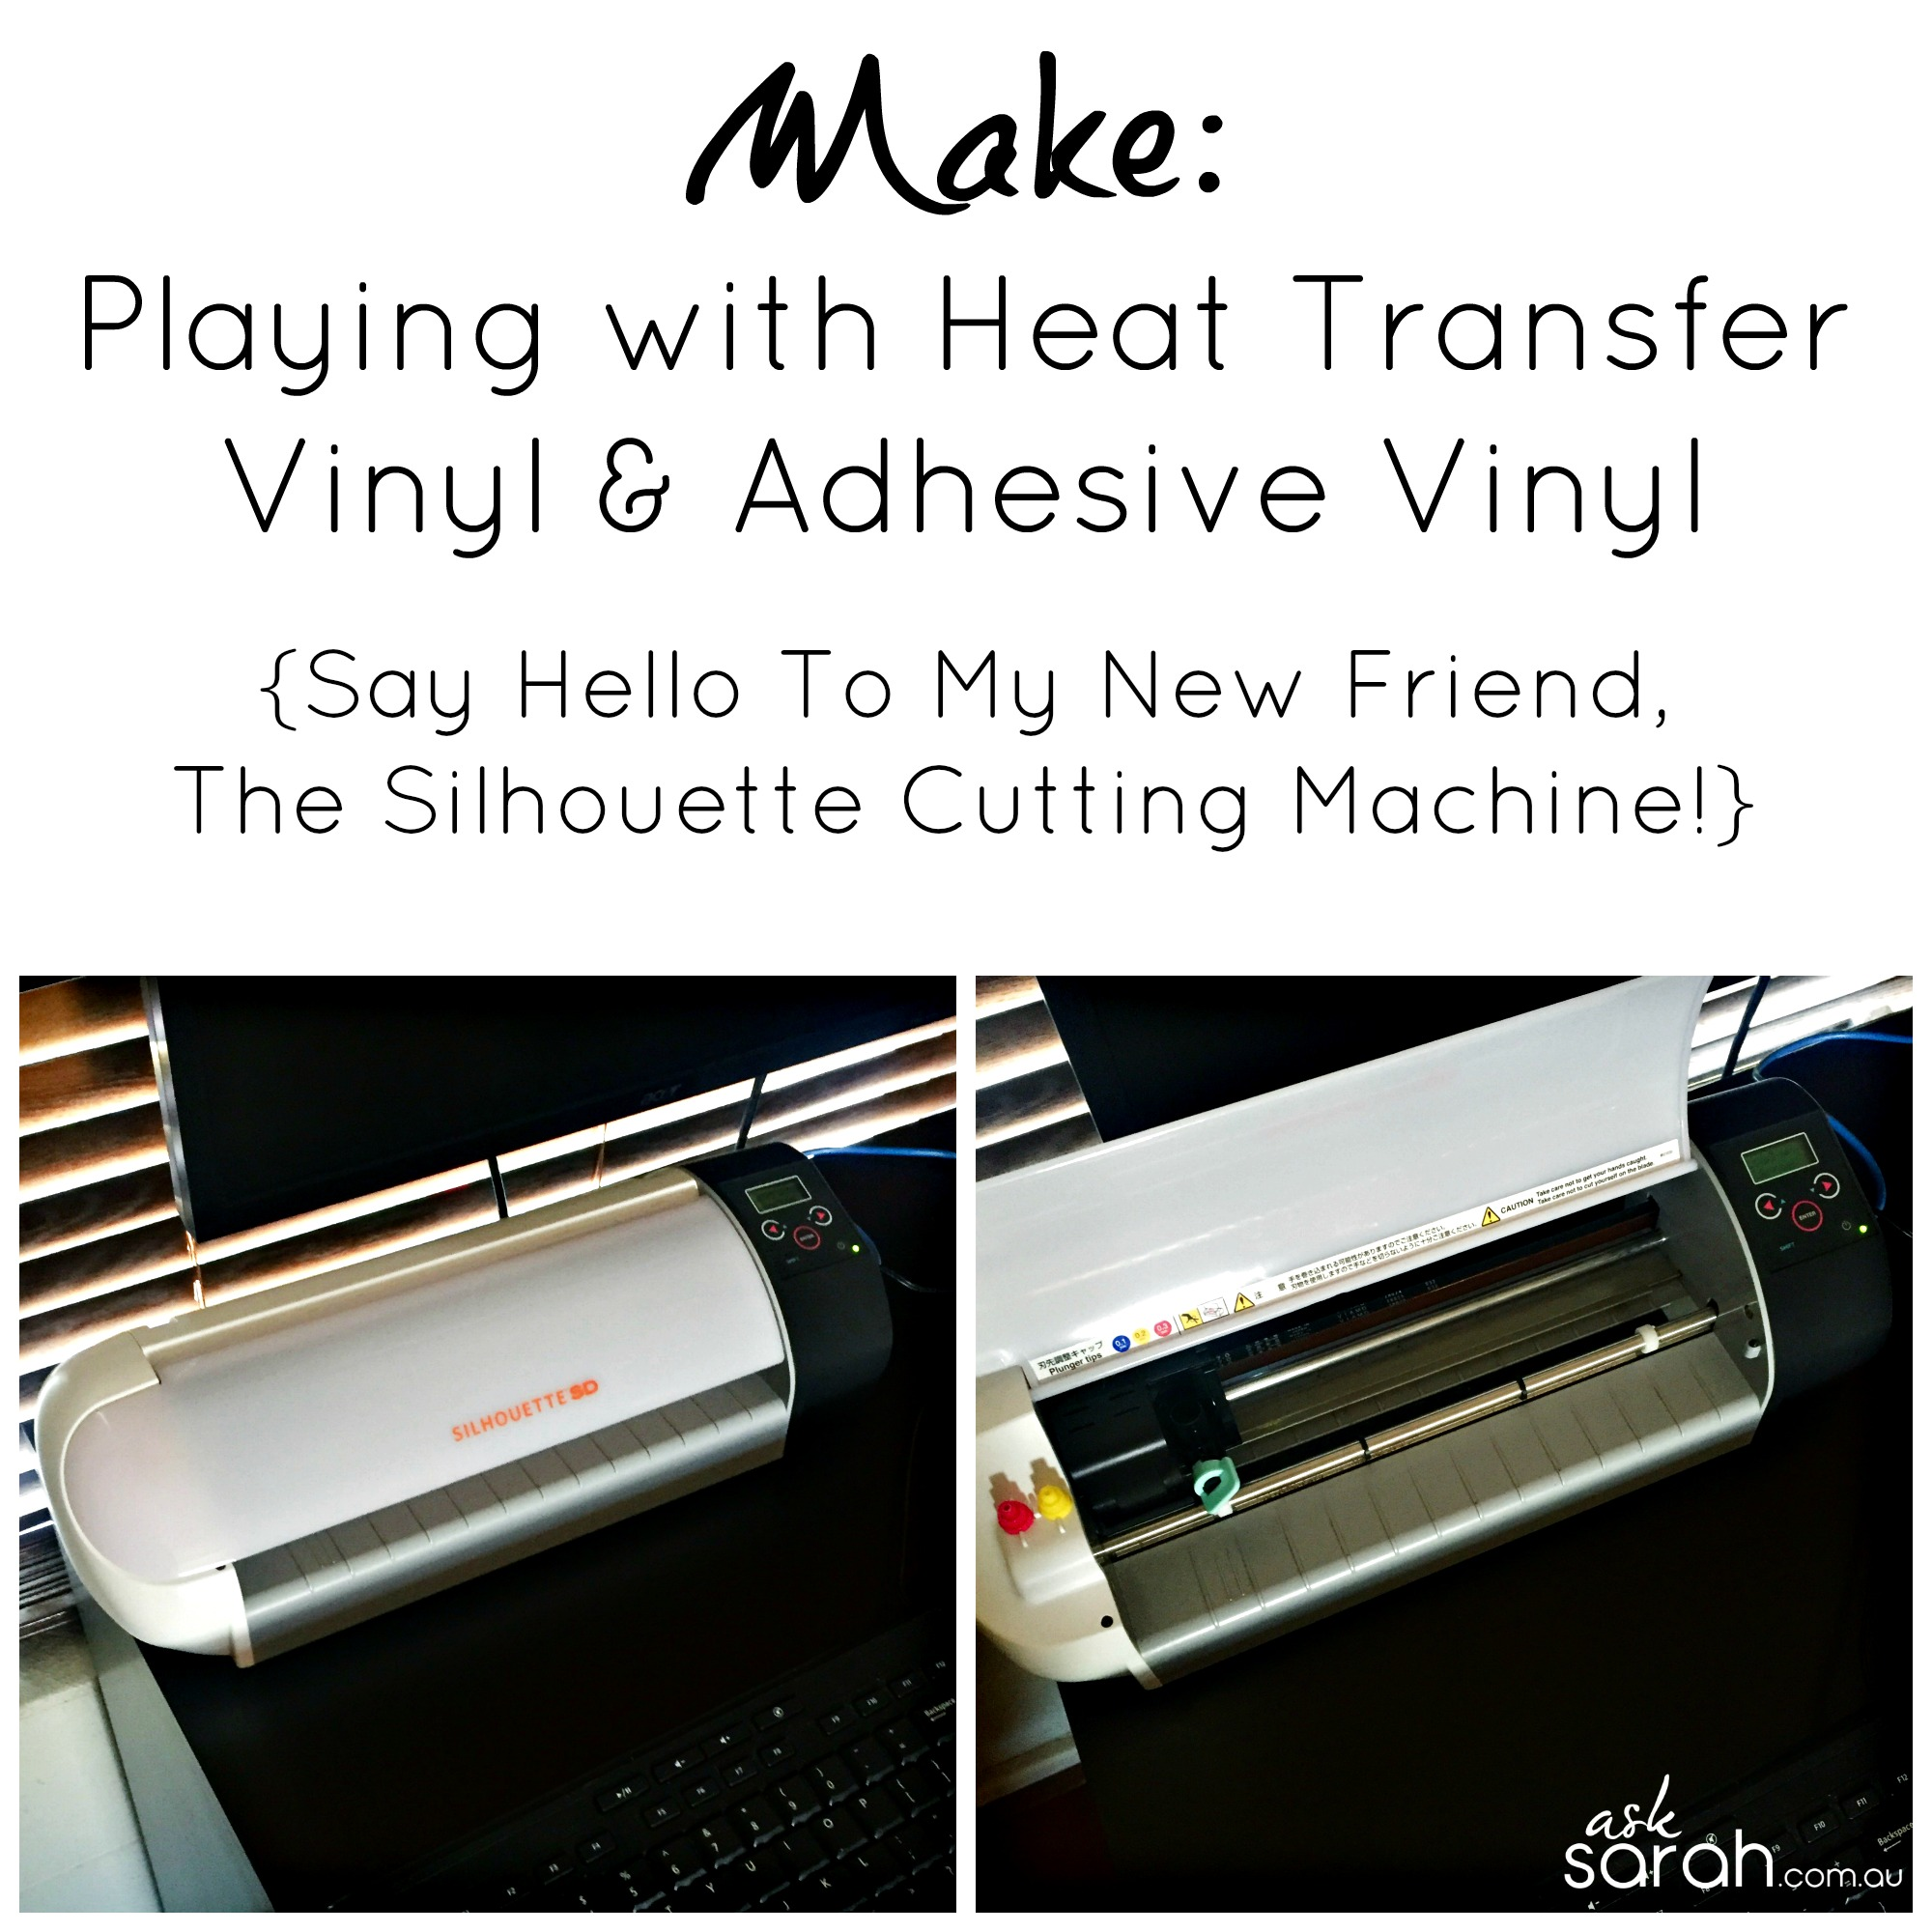 Make: Playing with Heat Transfer Vinyl & Adhesive Vinyl {Say Hello To My New Friend, The Silhouette Cutting Machine!}